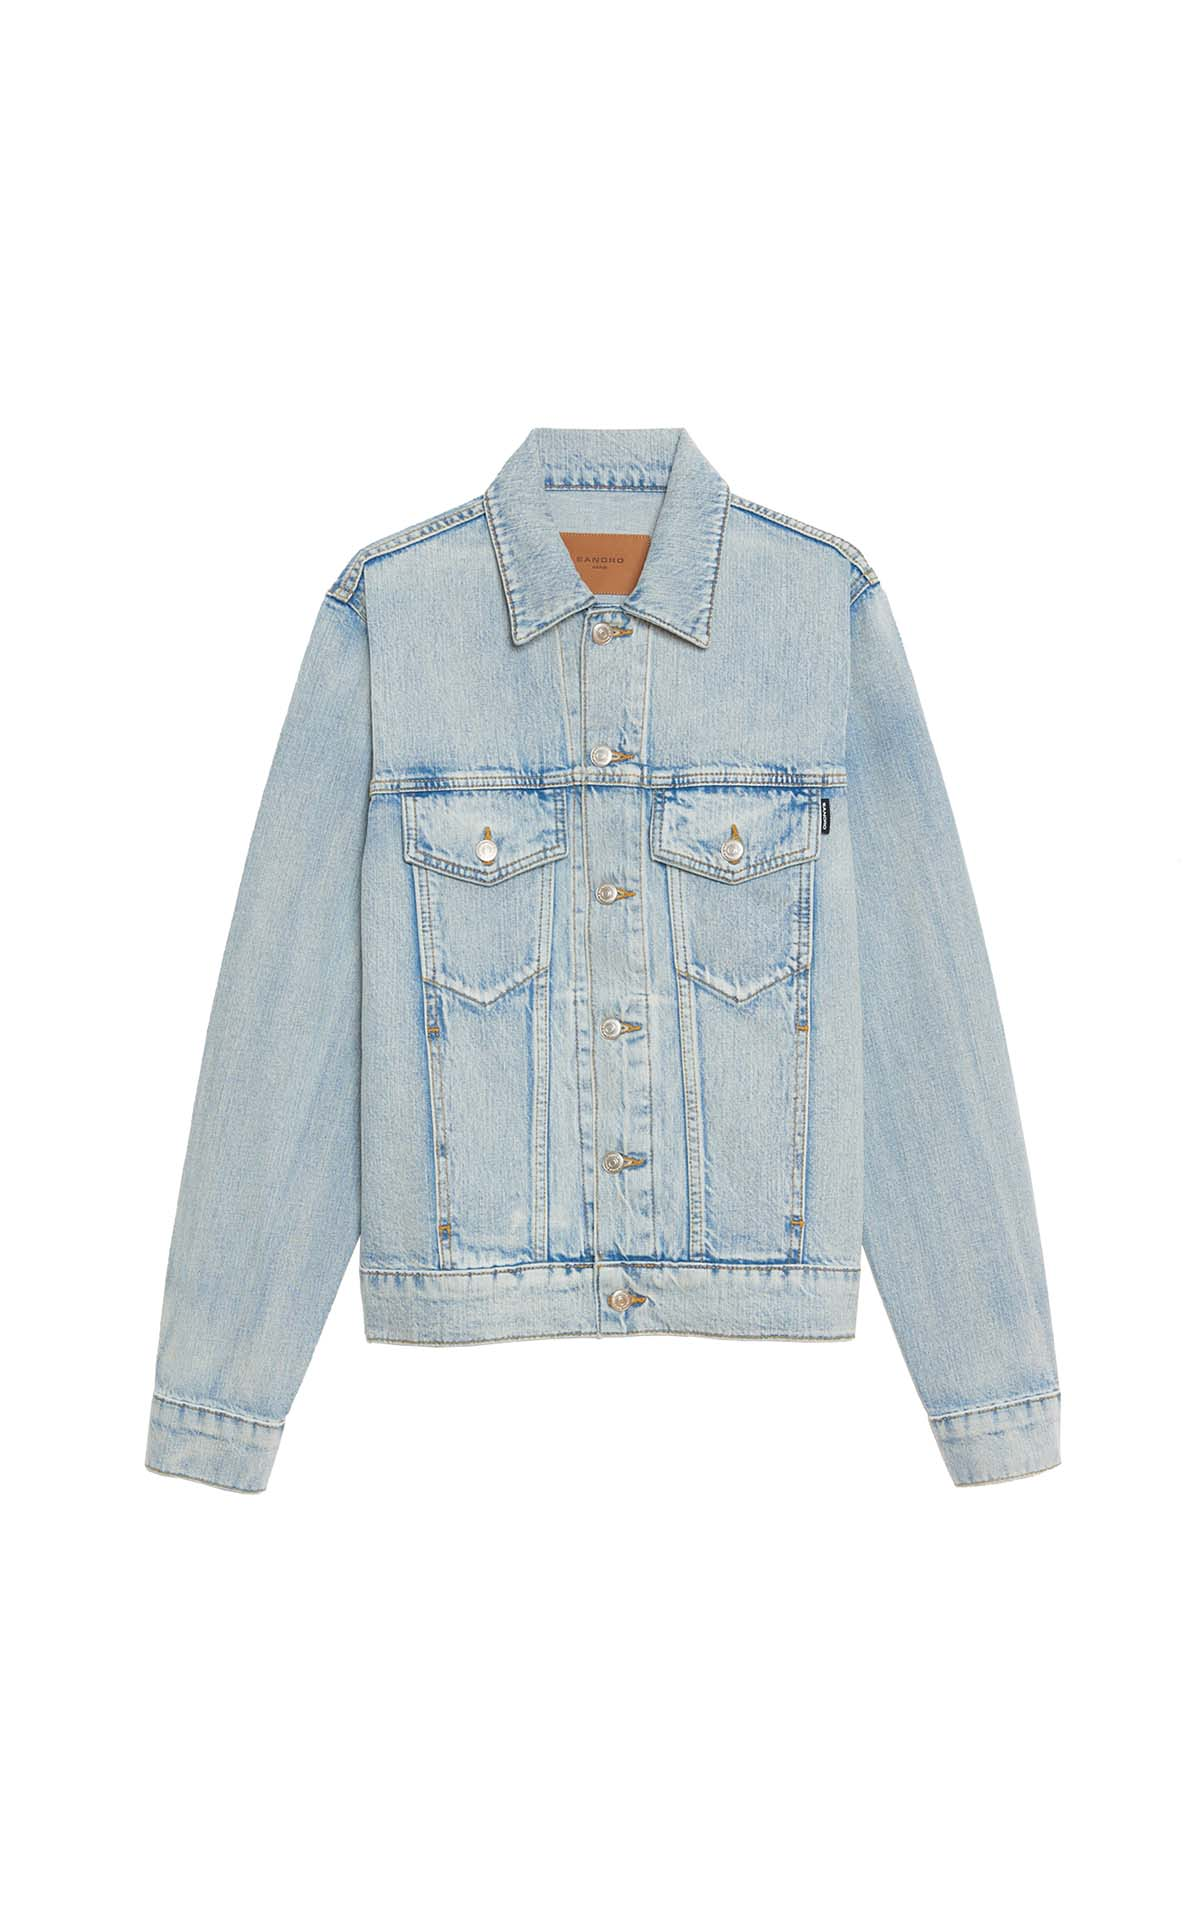 Sandro Stone washed denim jacket at The Bicester Village Shopping Collection